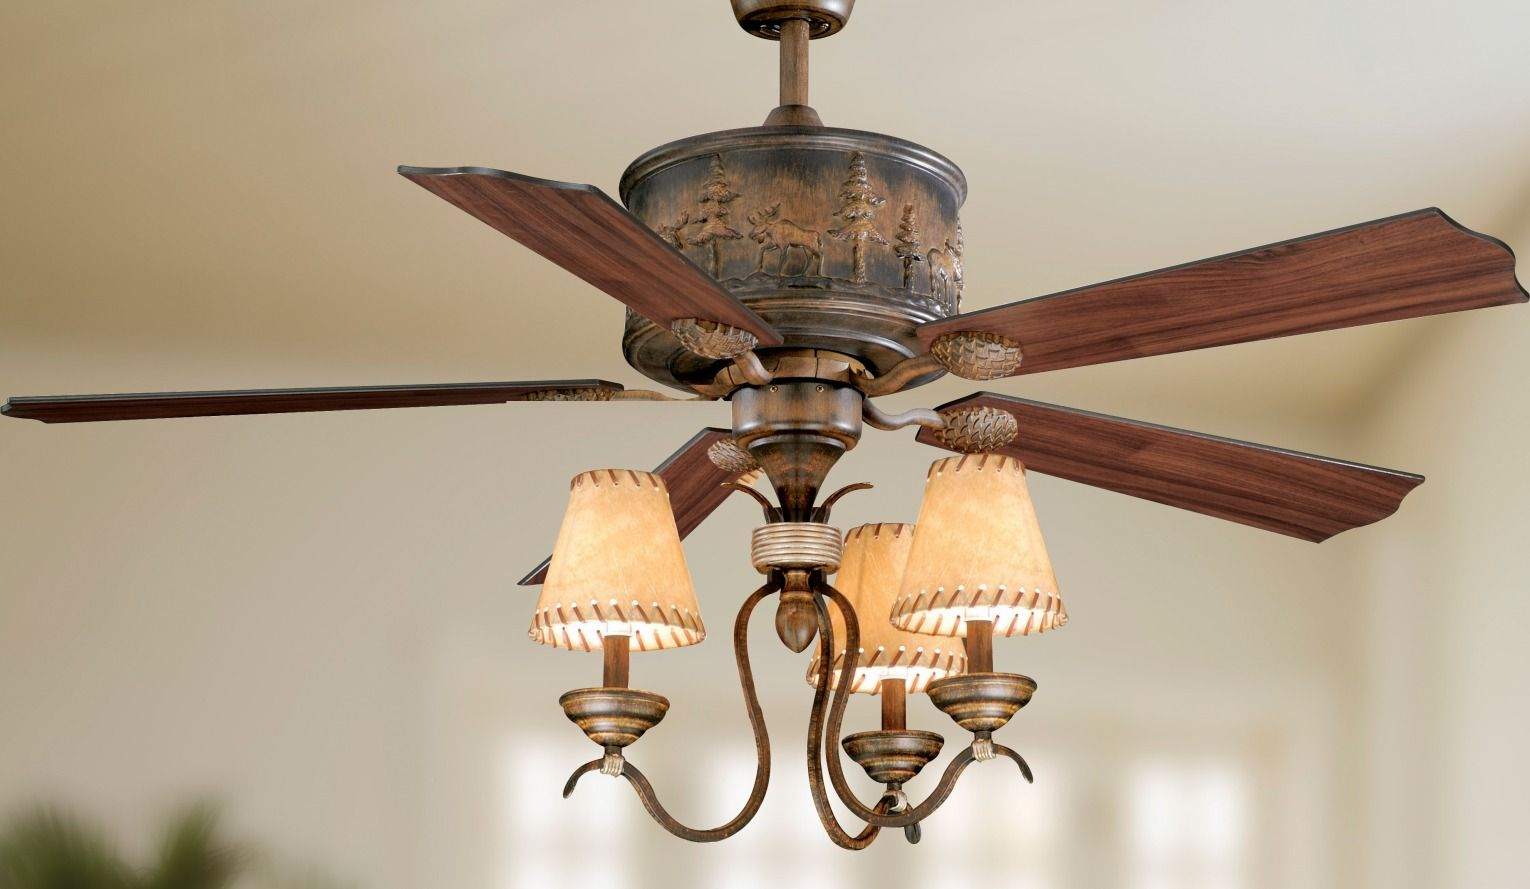 Old World Design Meets New World Technology Designed For Larger Rooms The Yellowstone Ceiling Fan Quietly Circula Ceiling Fan Lighting Ceiling Fans Ceiling